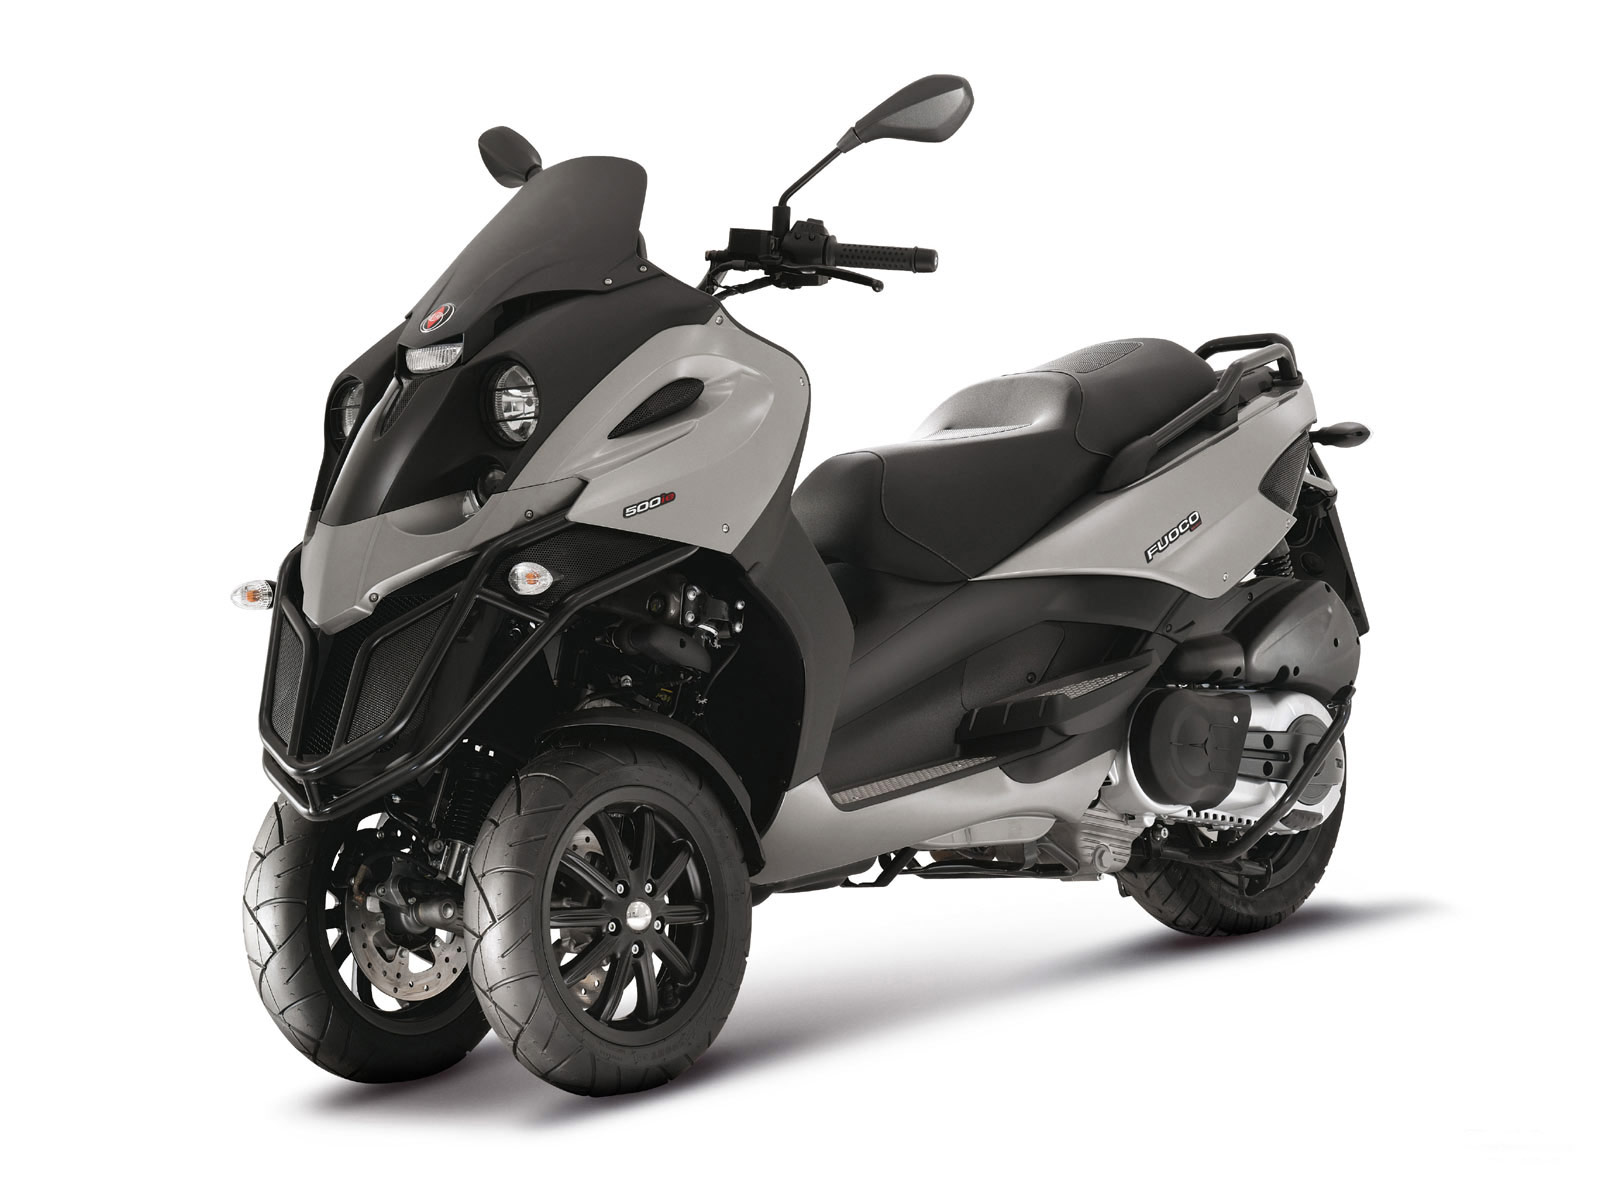 2009 gilera fuoco 500ie scooter pictures insurance info. Black Bedroom Furniture Sets. Home Design Ideas